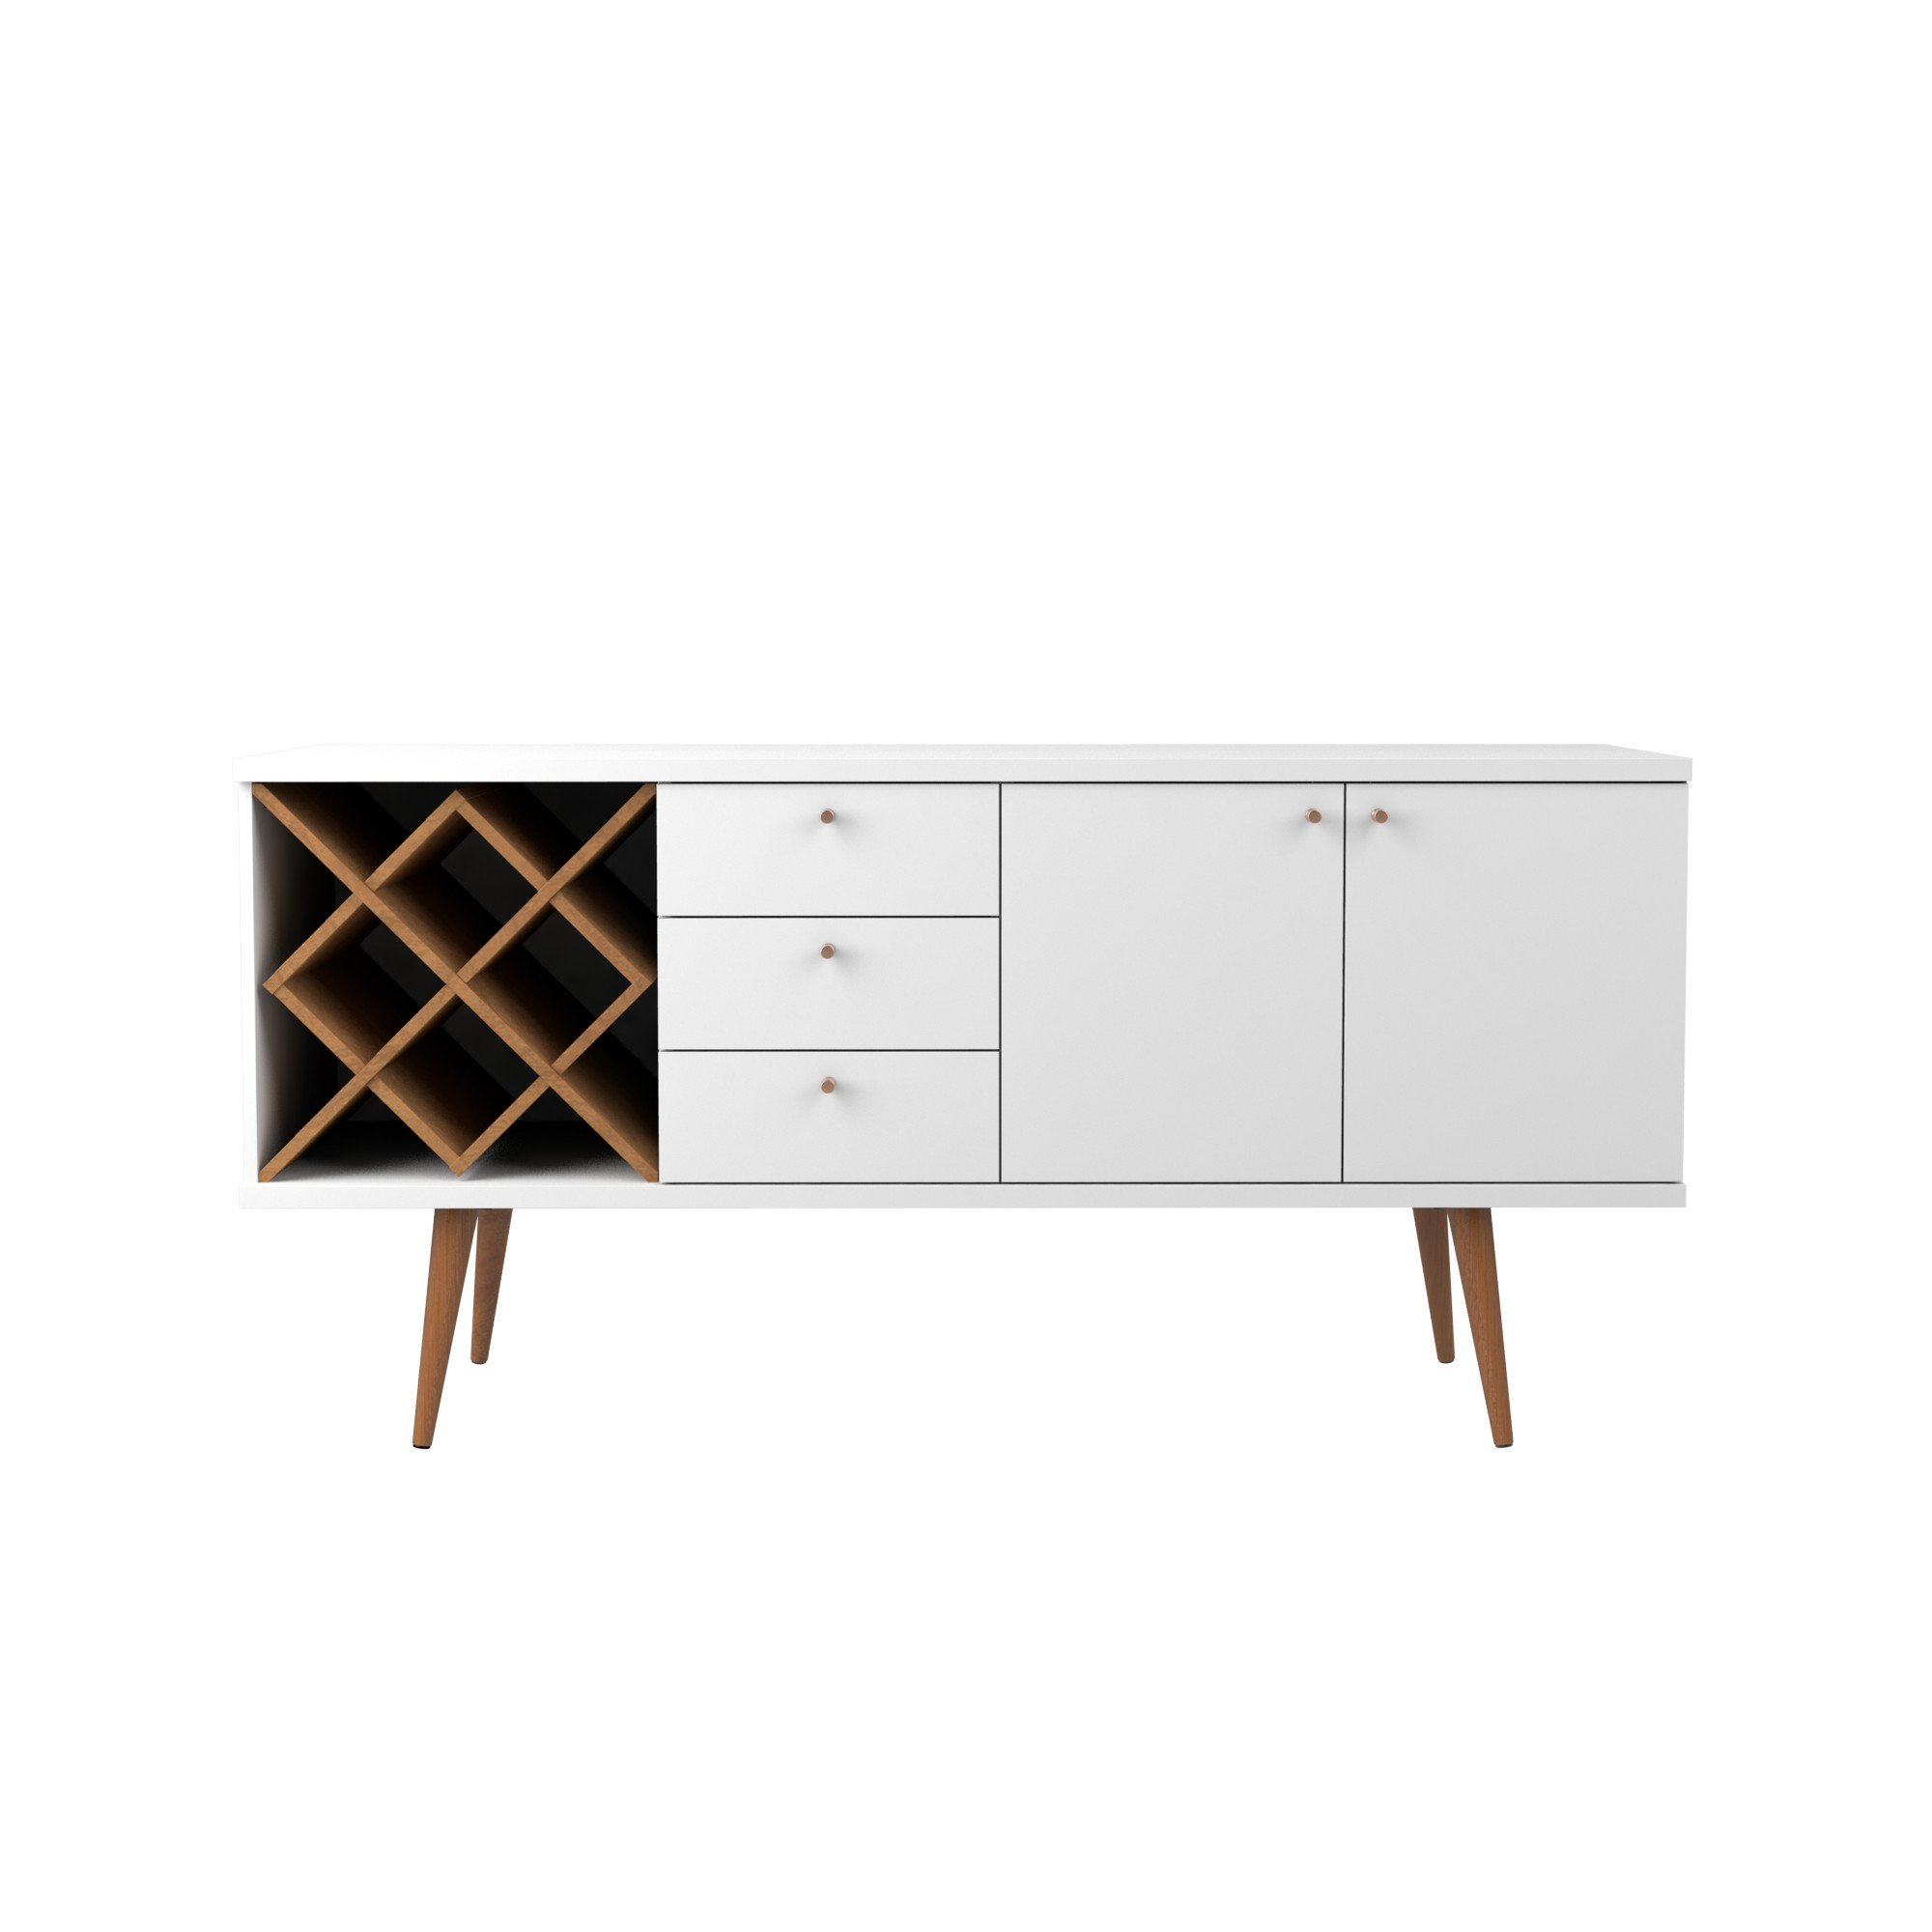 Manhattan Comfort Utopia Collection Mid Century Modern Sideboard Buffet Stand With 4 Bottle Wine Rack, Cabinet and 3 Drawers, Splayed Legs, White